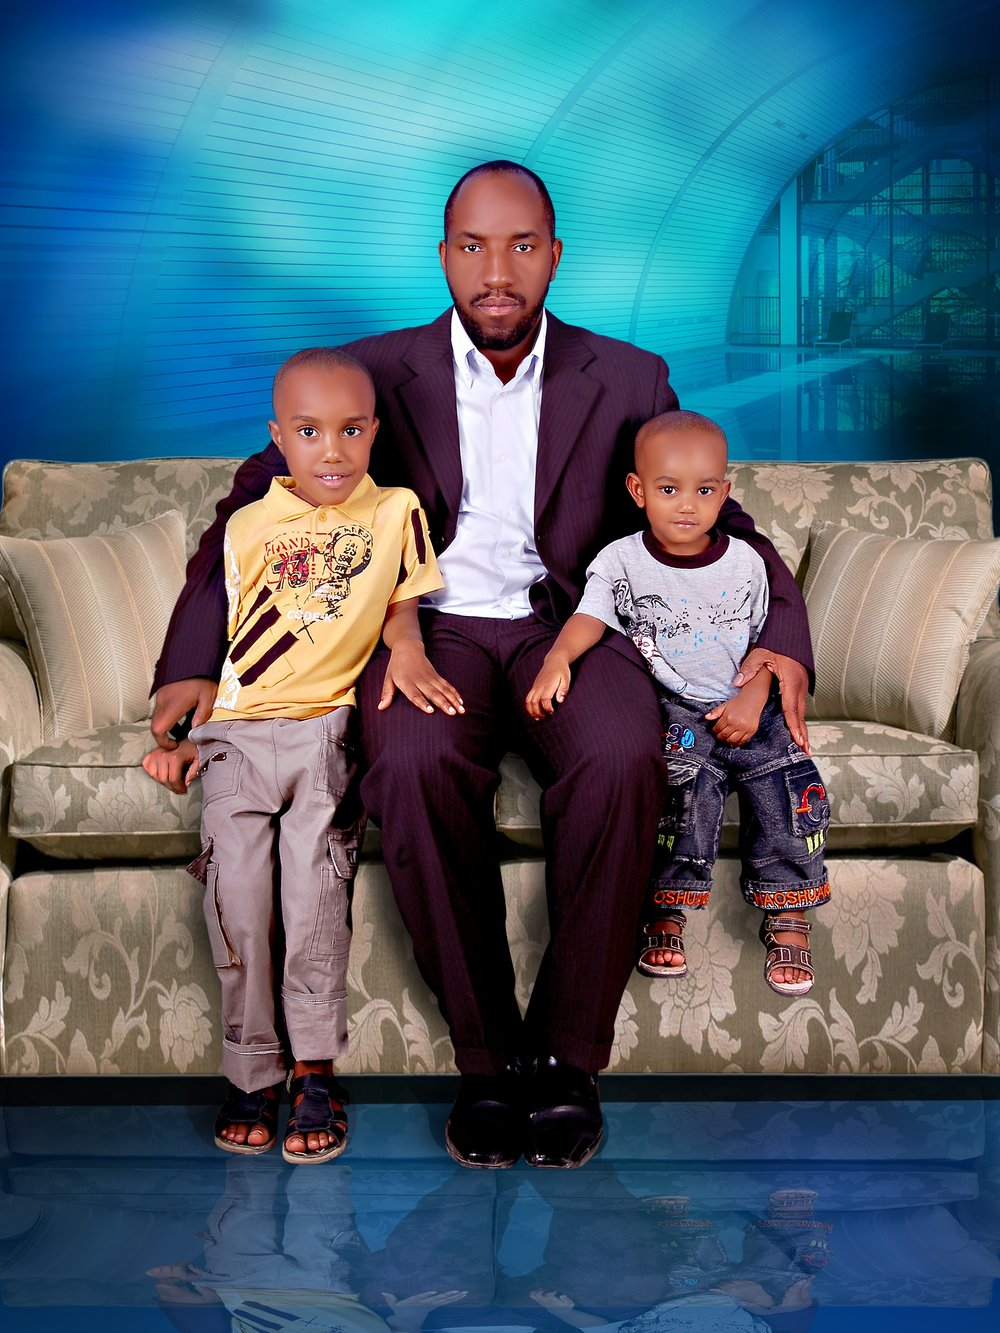 Jamal with his two sons.